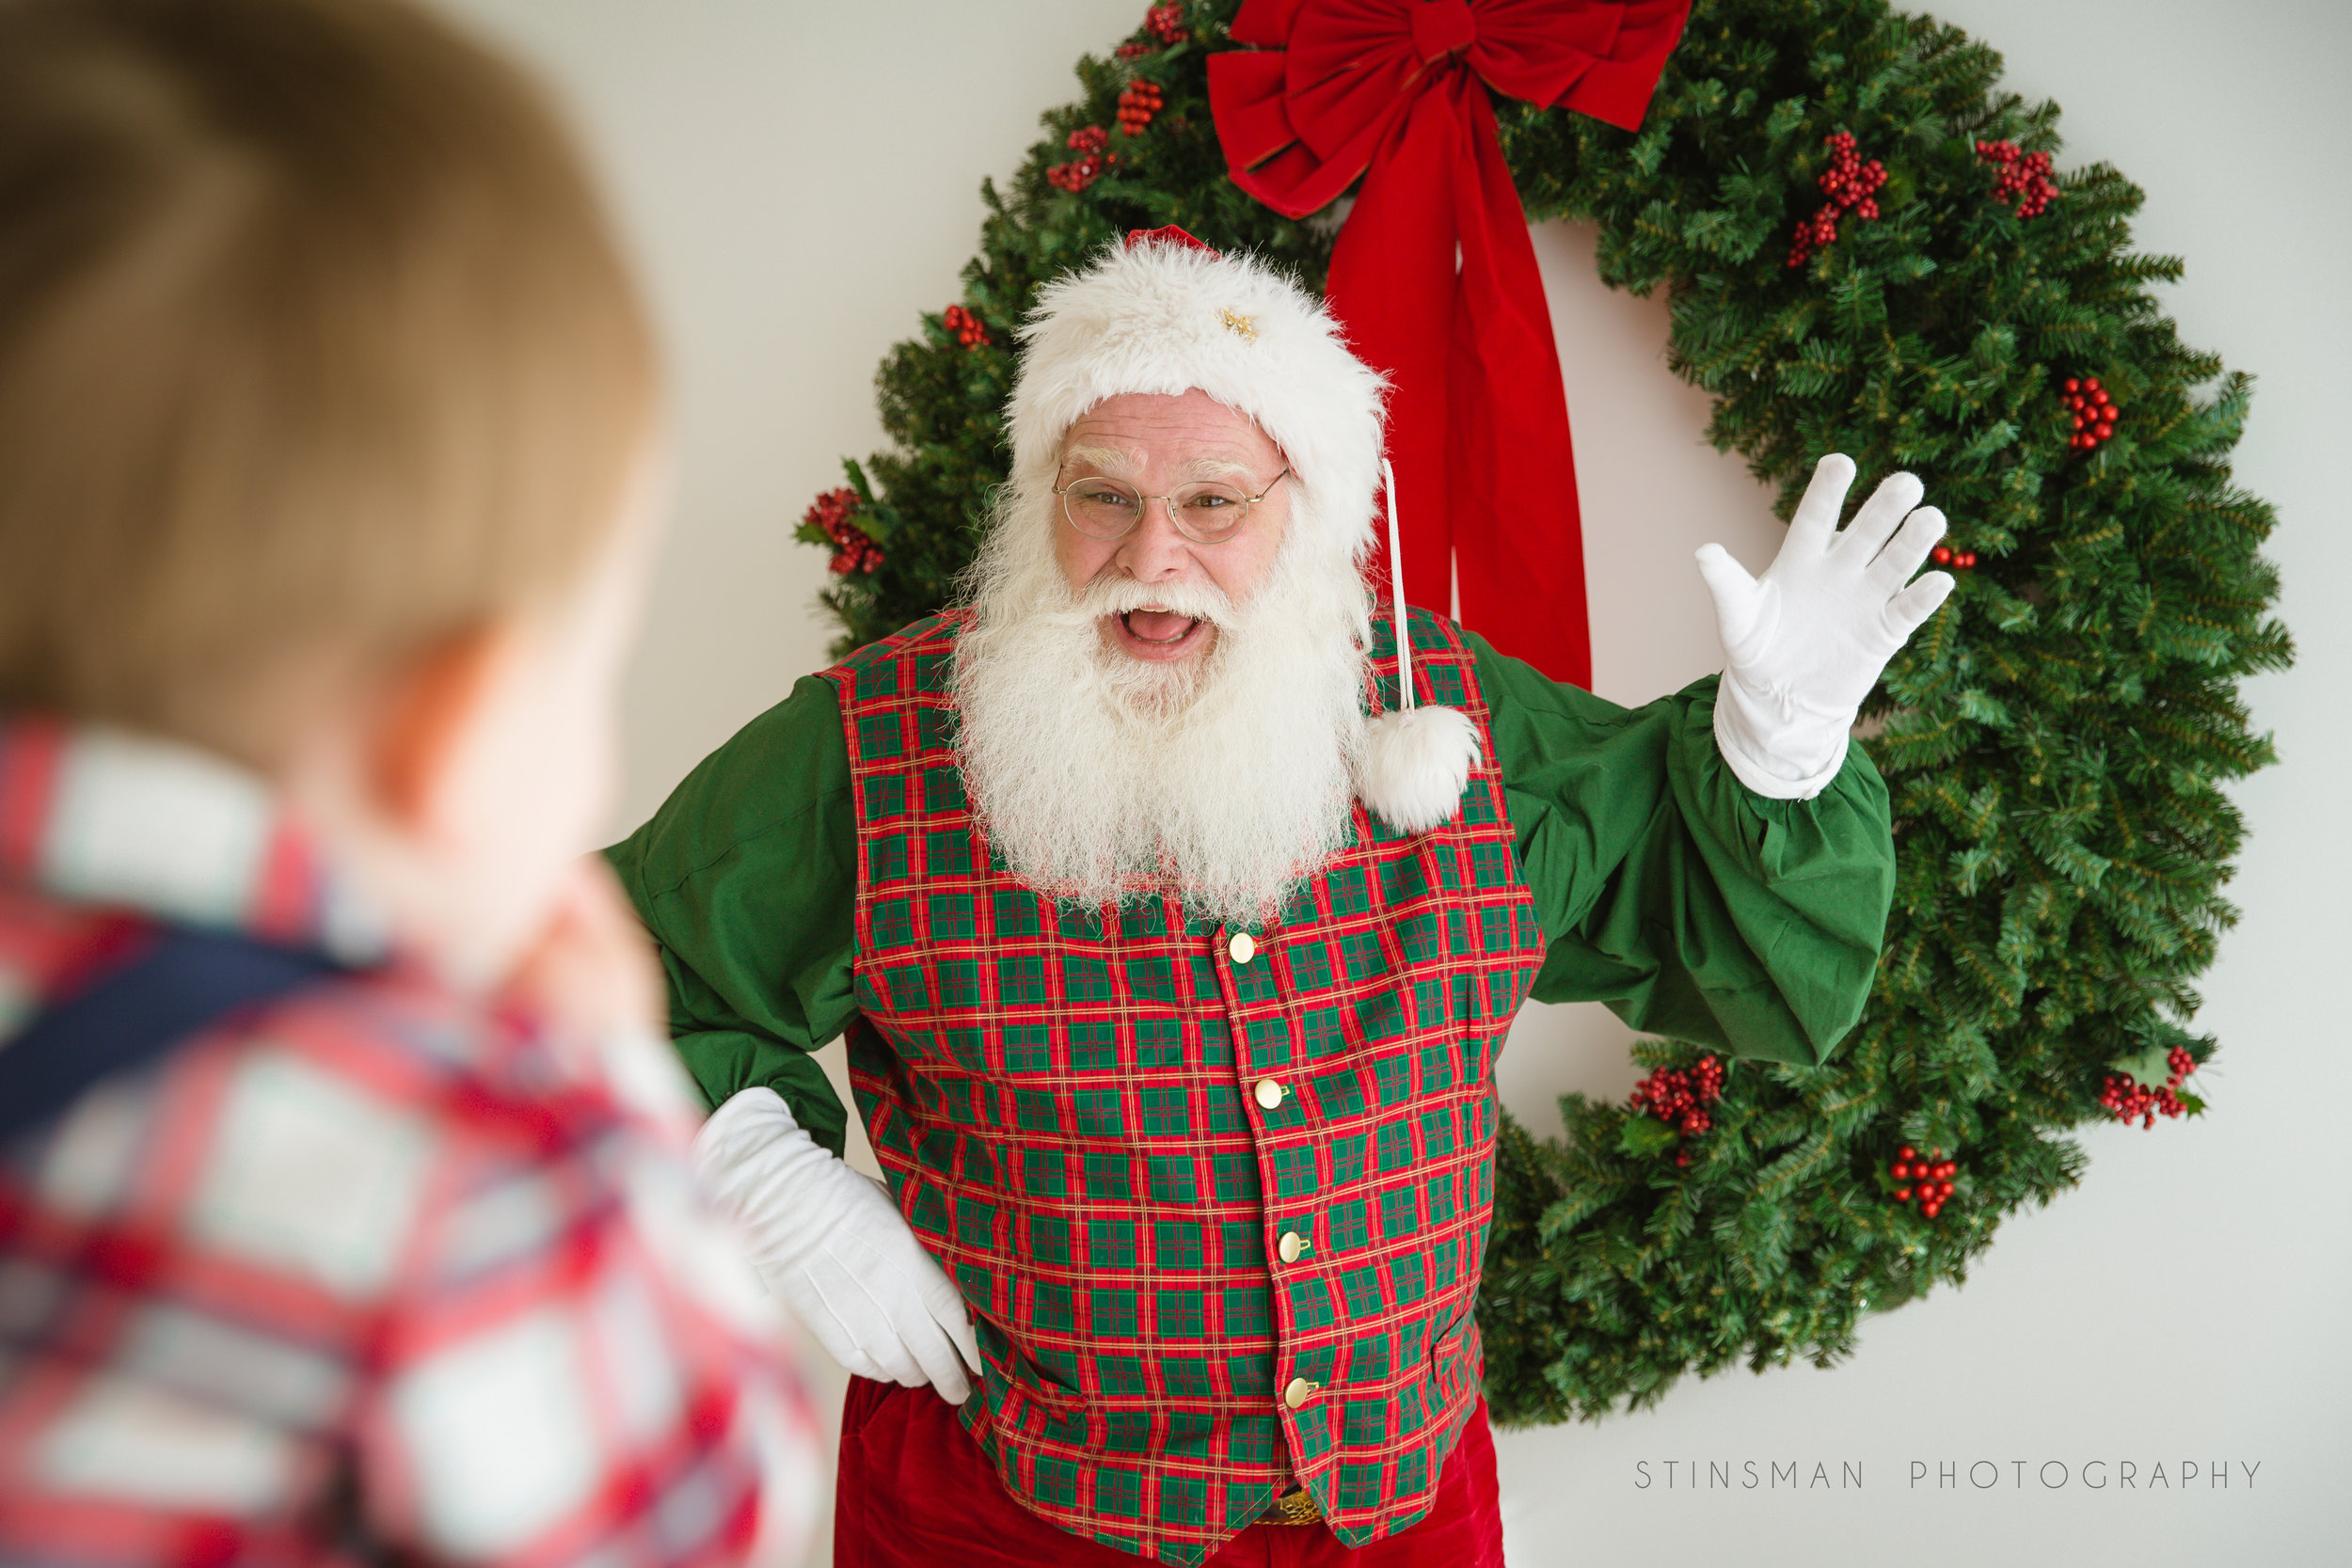 Santa waving to a scared little boy in burlington nj photo studio